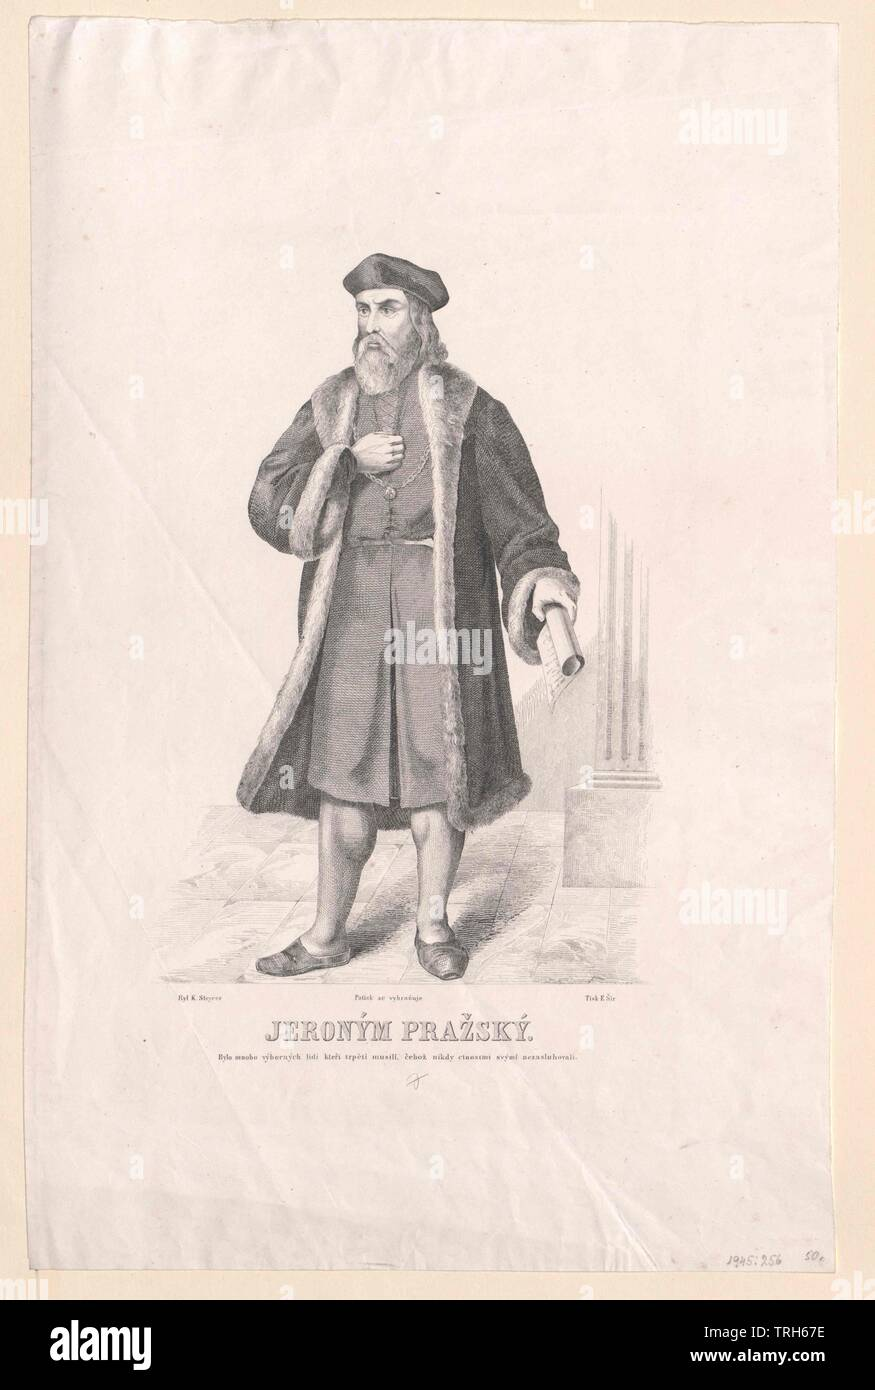 Jerome of Prague,ecclesiastic, chaplain, chaplains, false teachers, reformer, theology, people, full-length, full length, man, men, male, manly, Prague, Praha, Additional-Rights-Clearance-Info-Not-Available - Stock Image